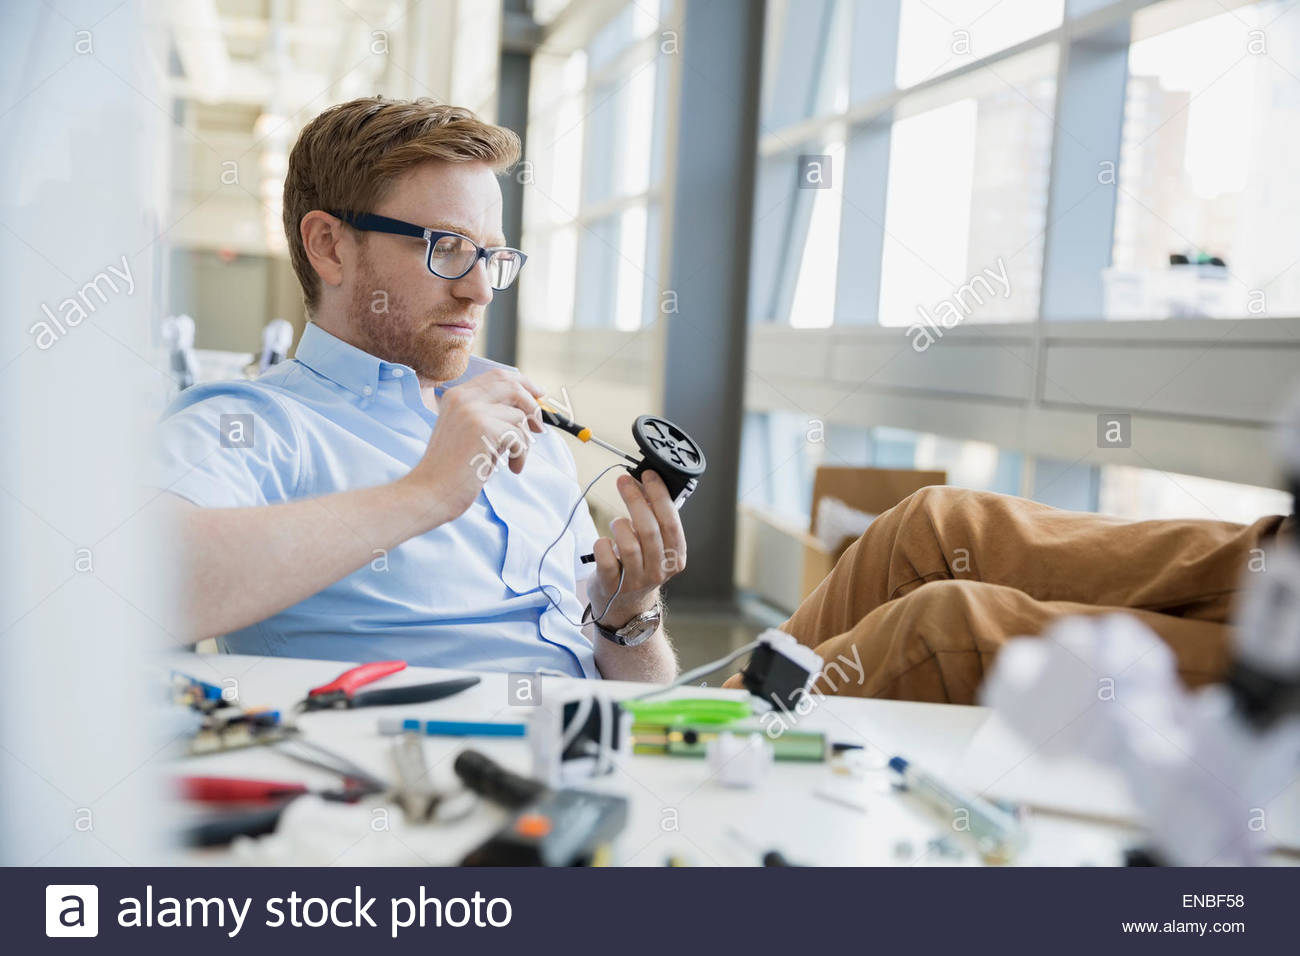 Engineer assembling robotics at desk with feet up - Stock Image